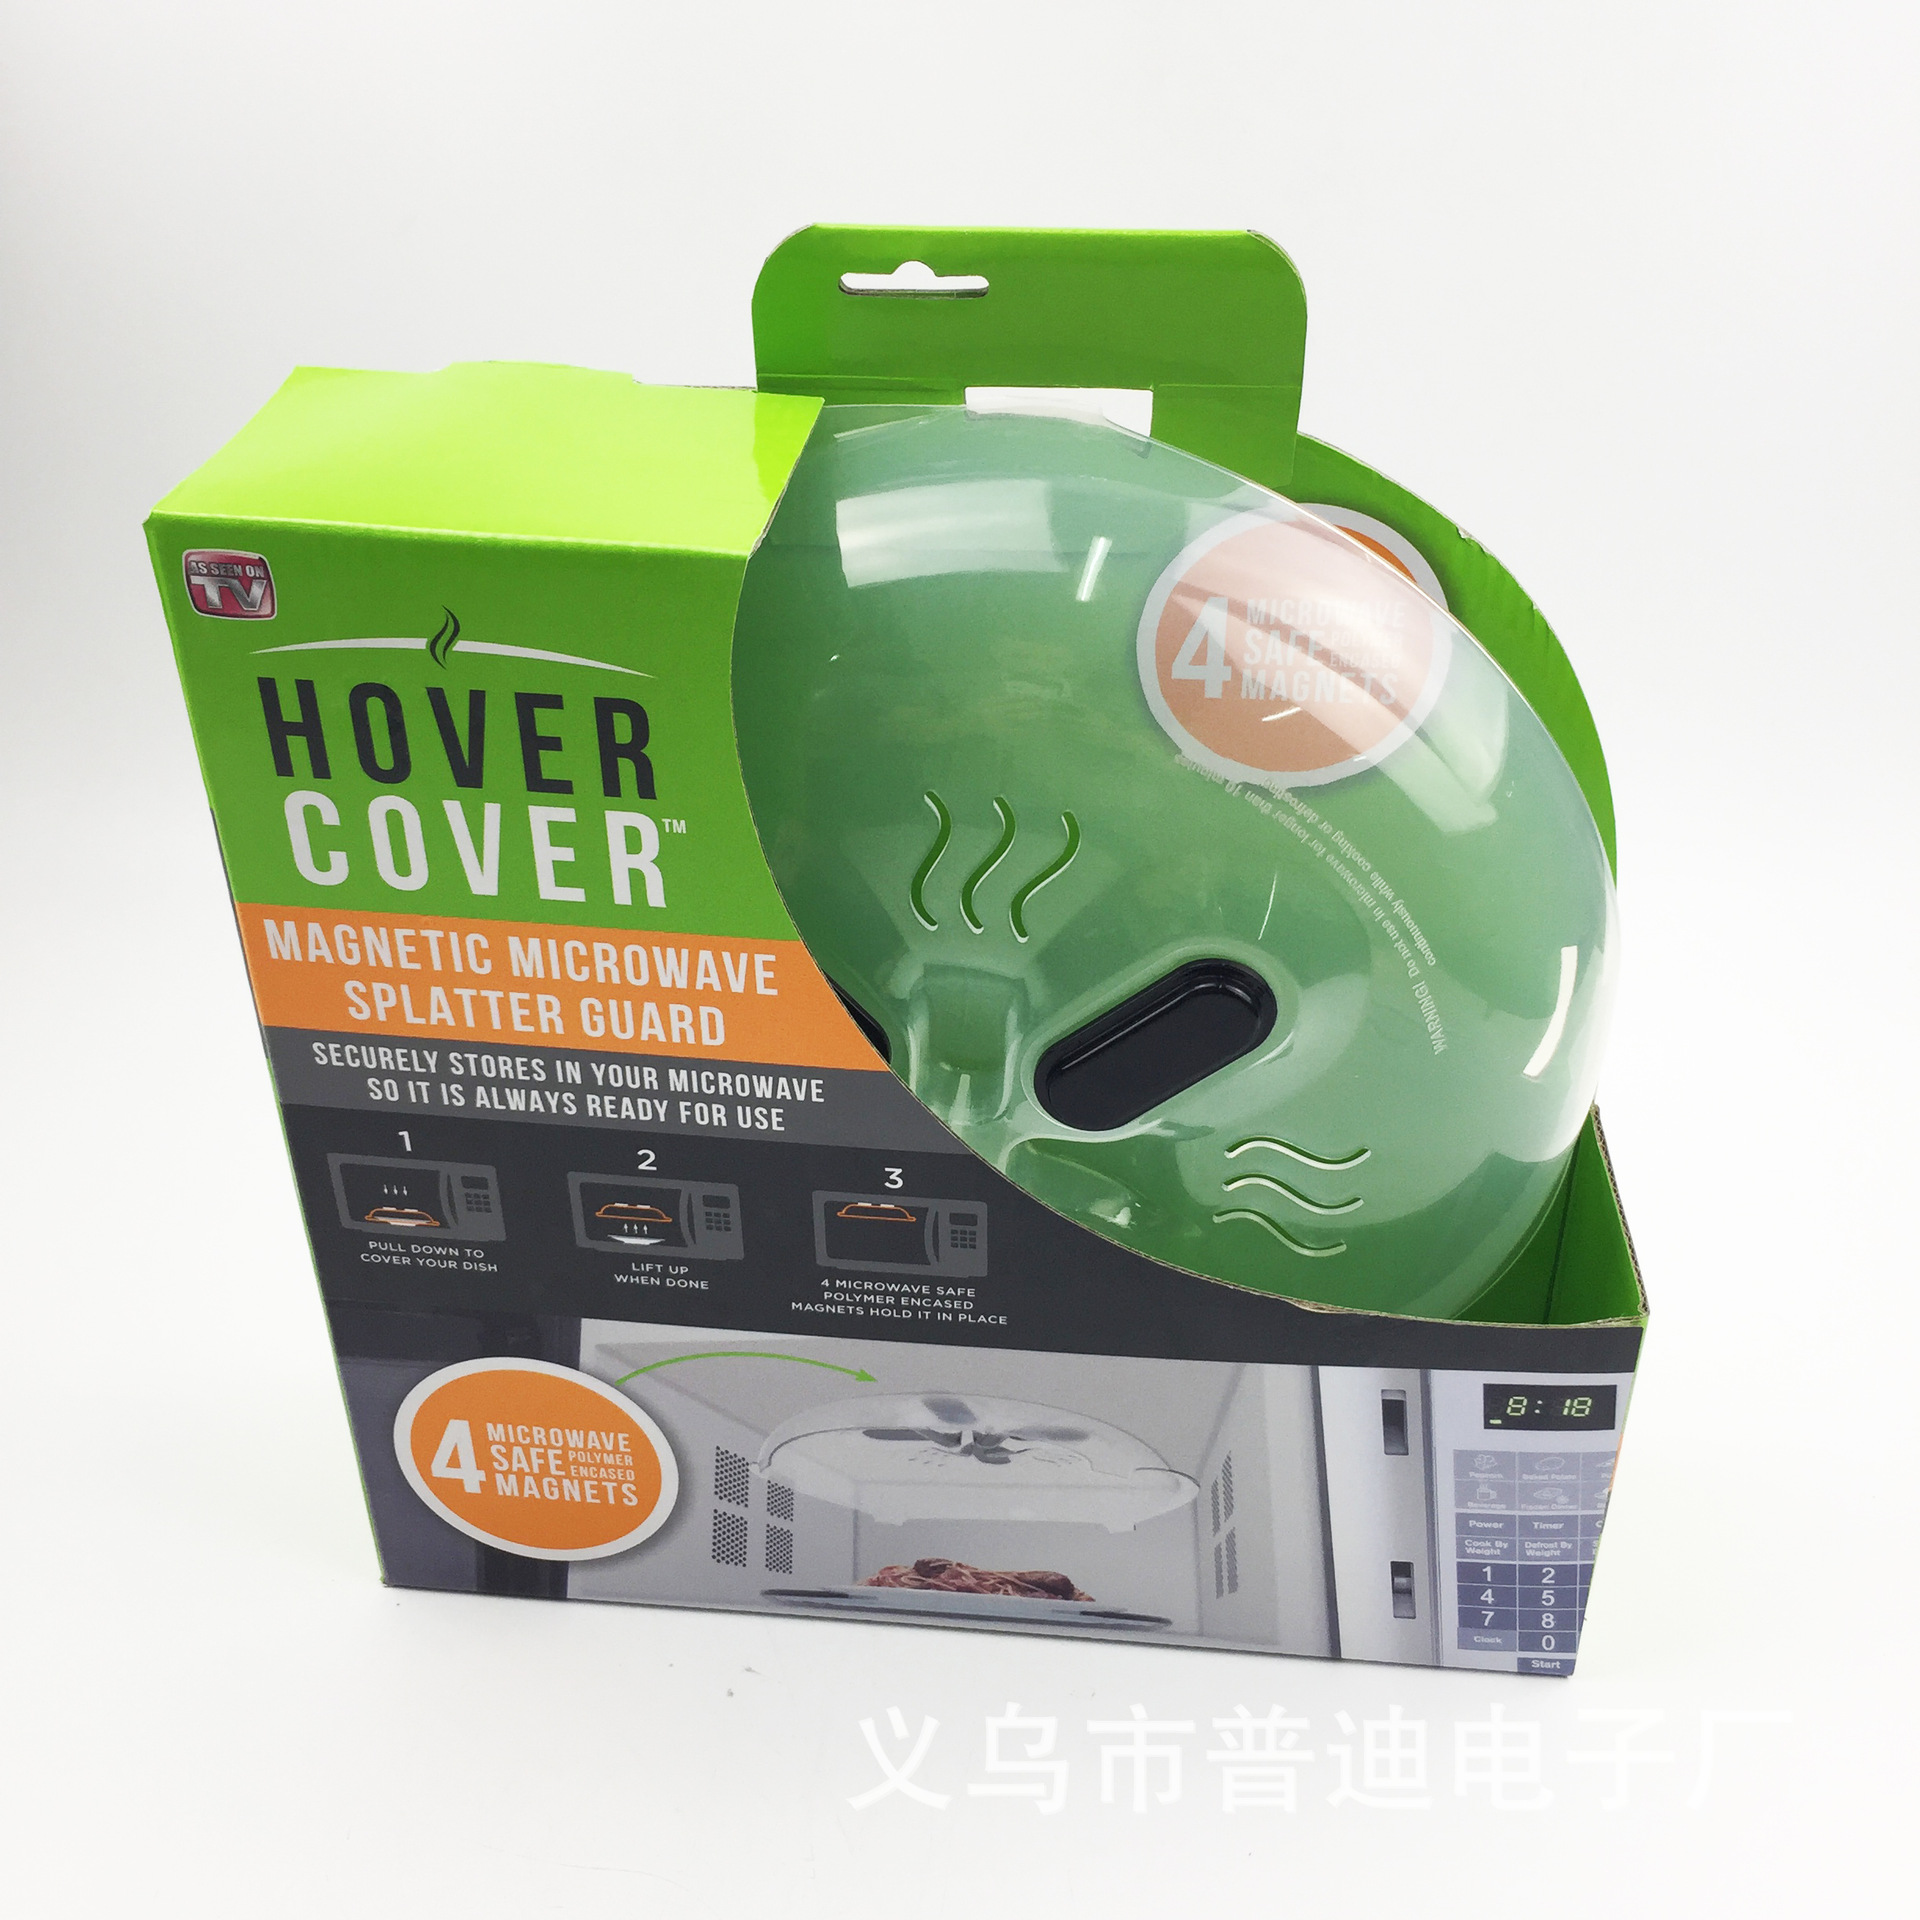 HOVER COVER <font color=red>微波炉</font> <font color=red>悬停</font><font color=red>盖</font> 防溢<font color=red>盖</font> 塑料罩子 安全磁铁防飞溅射<font color=red>盖</font>